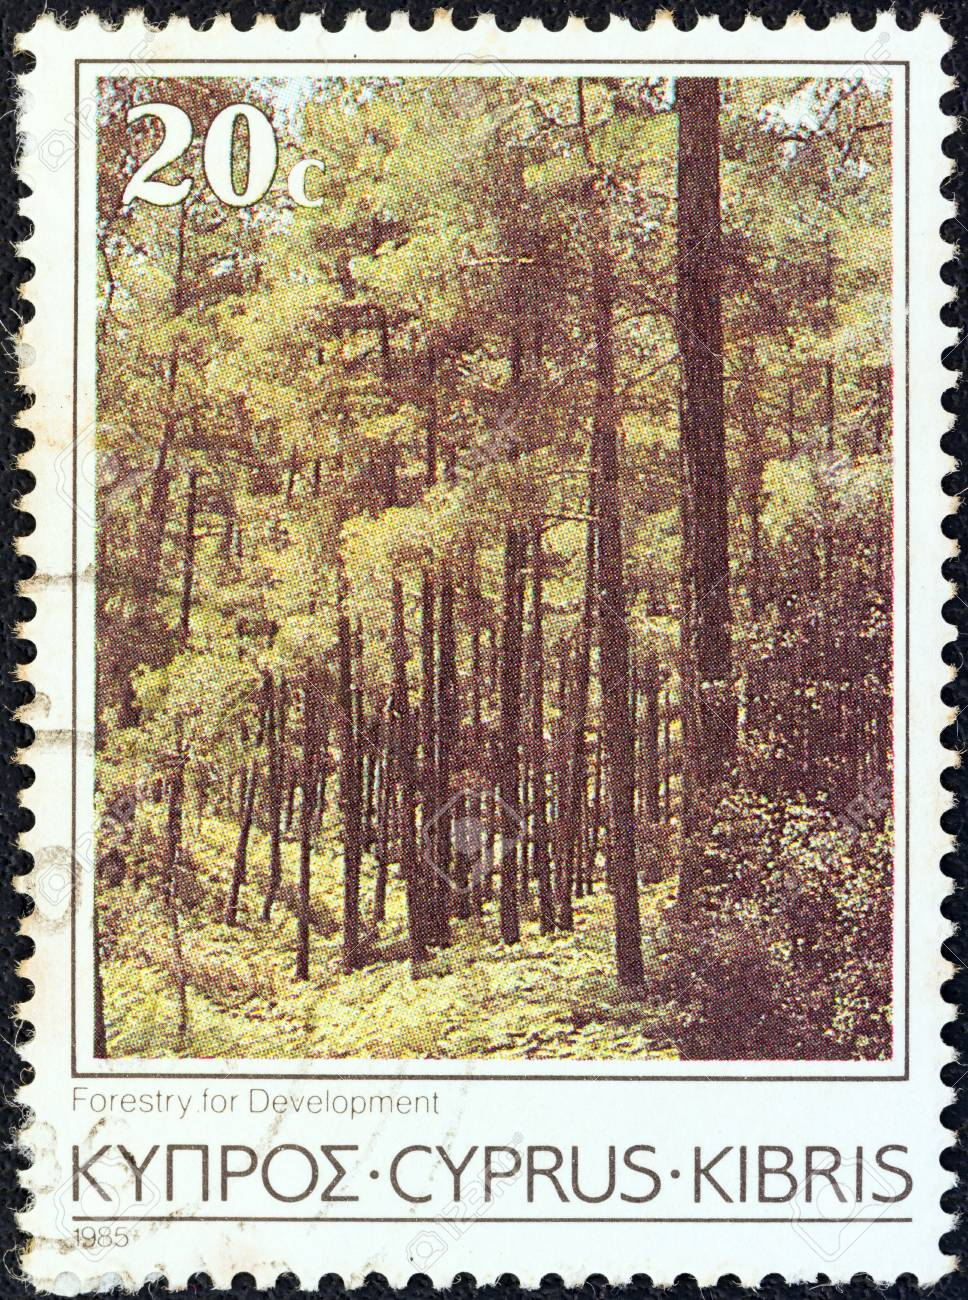 CYPRUS - CIRCA 1985: A stamp printed in Cyprus from the